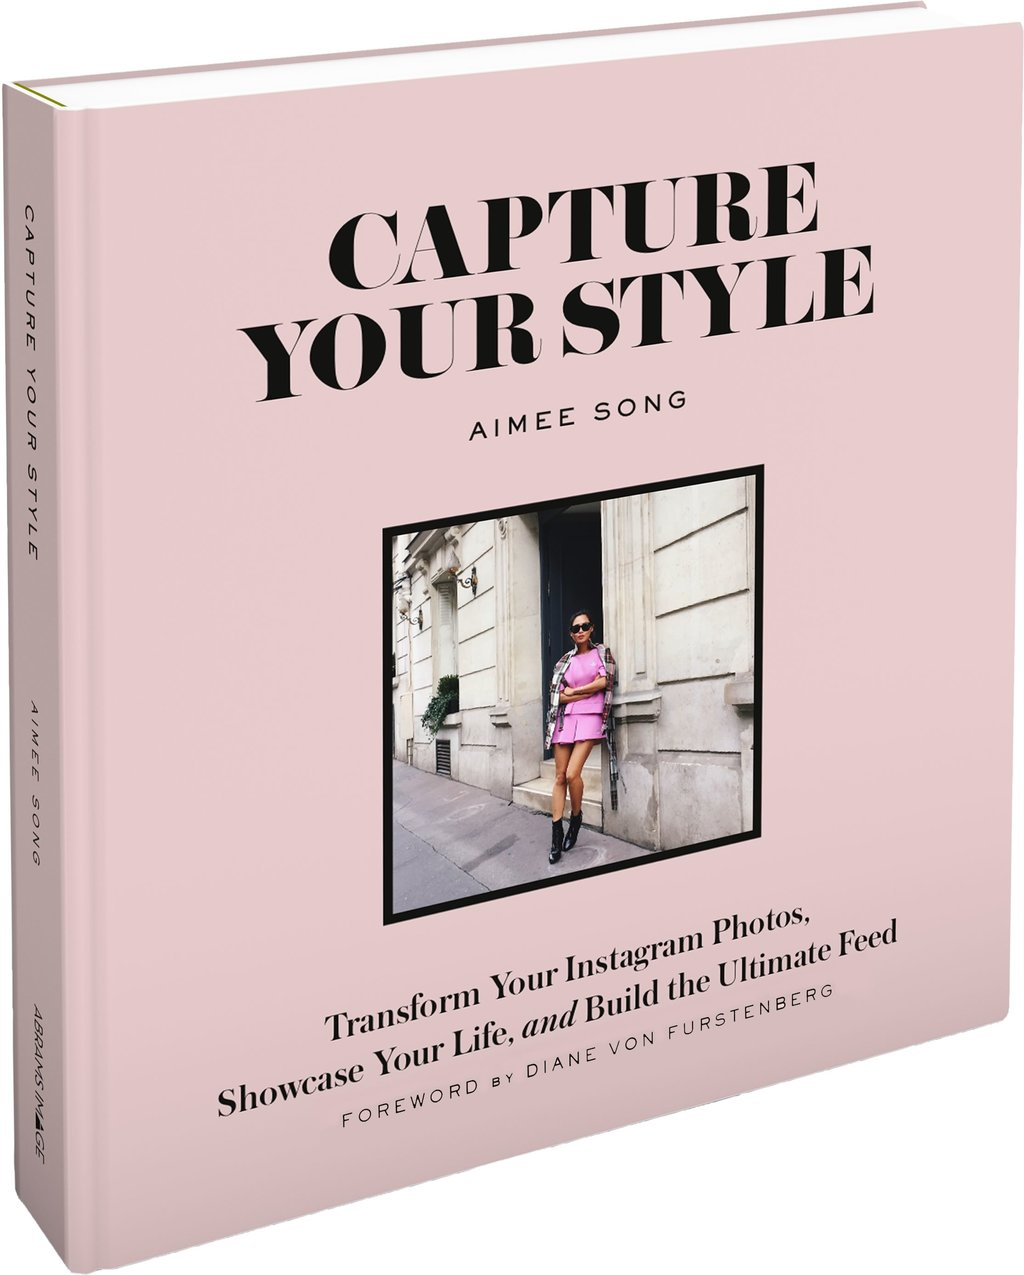 Capture Your Style b Aimee Song book